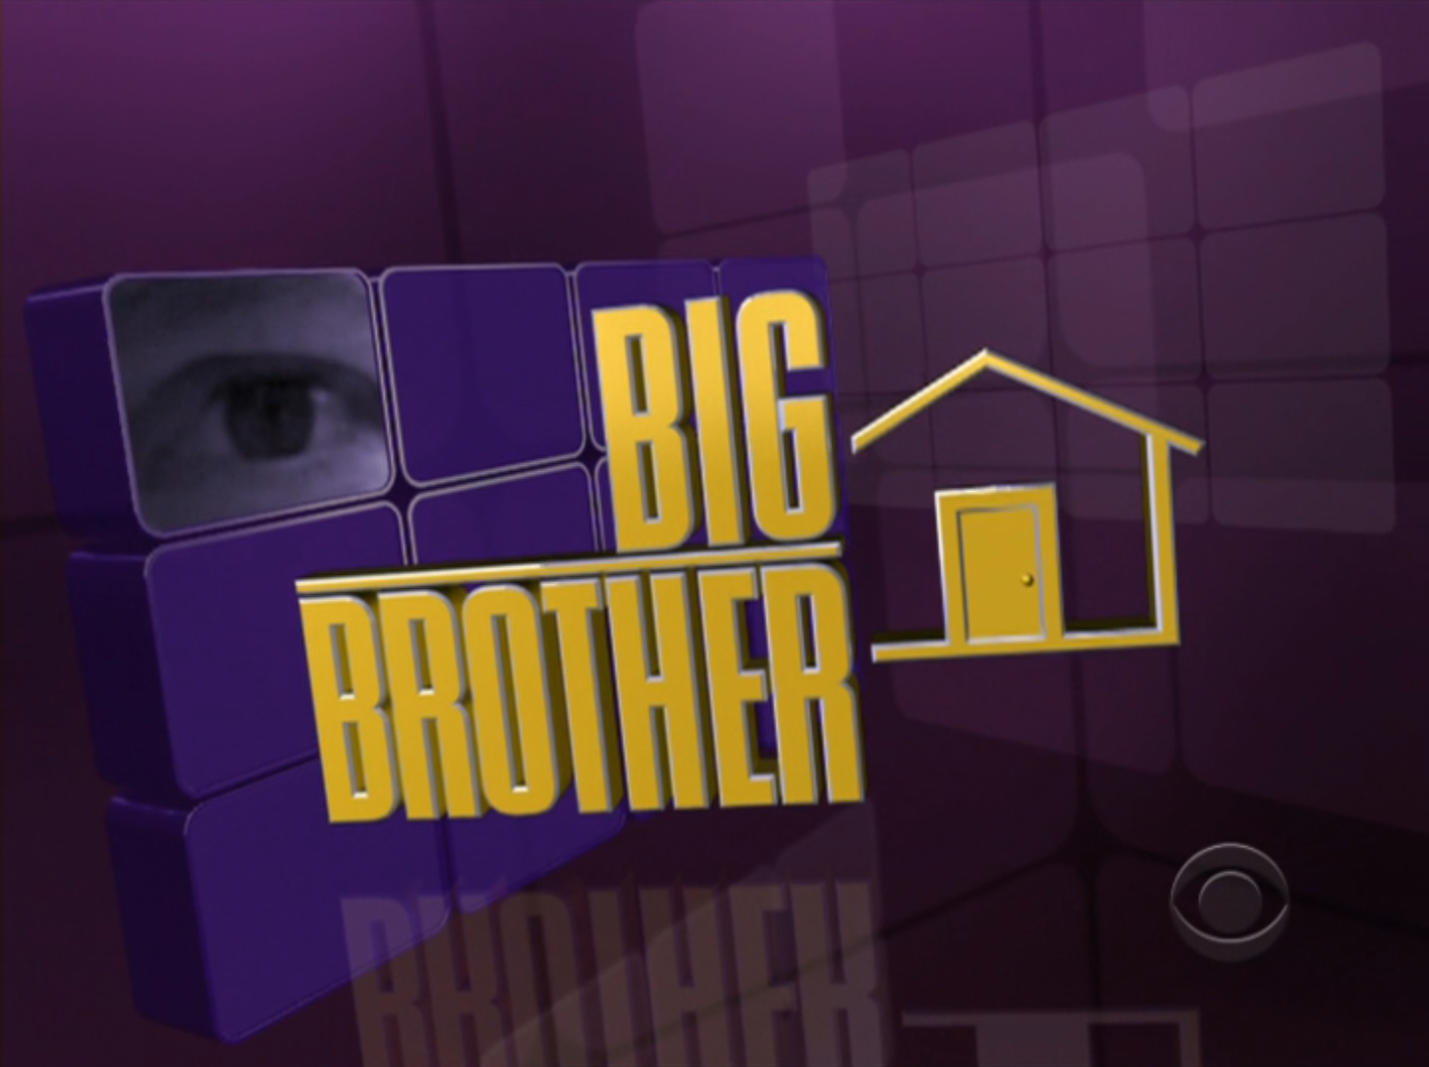 Big Brother 11 (US)